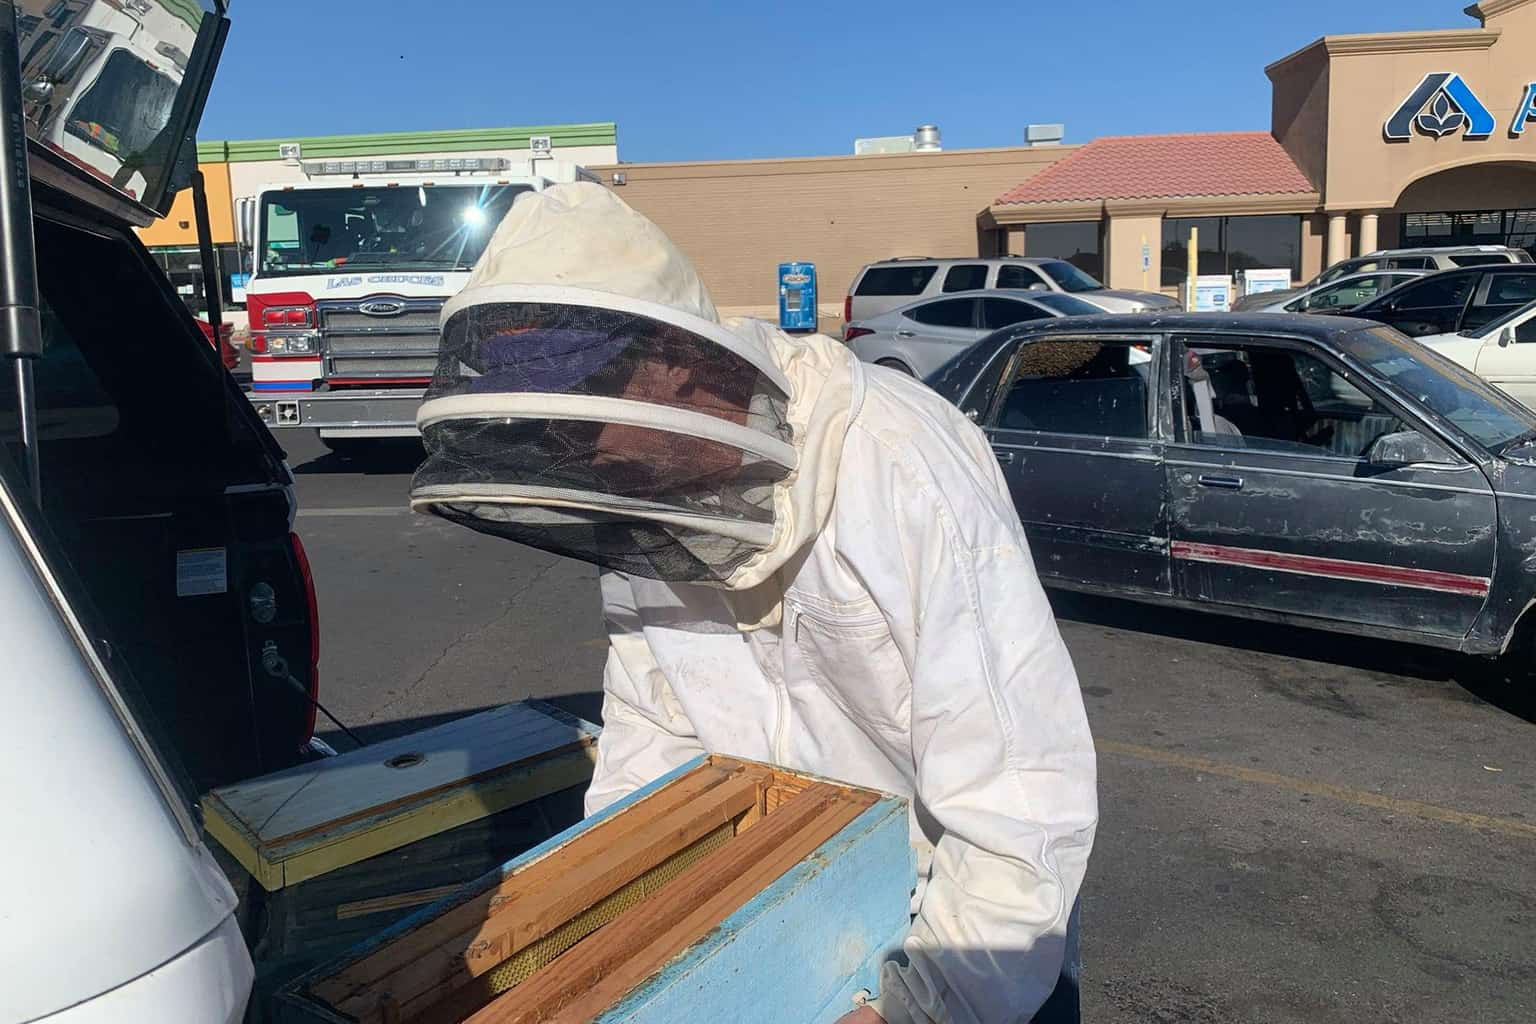 Off duty firefighter braves swarm of bees to rescue man 2